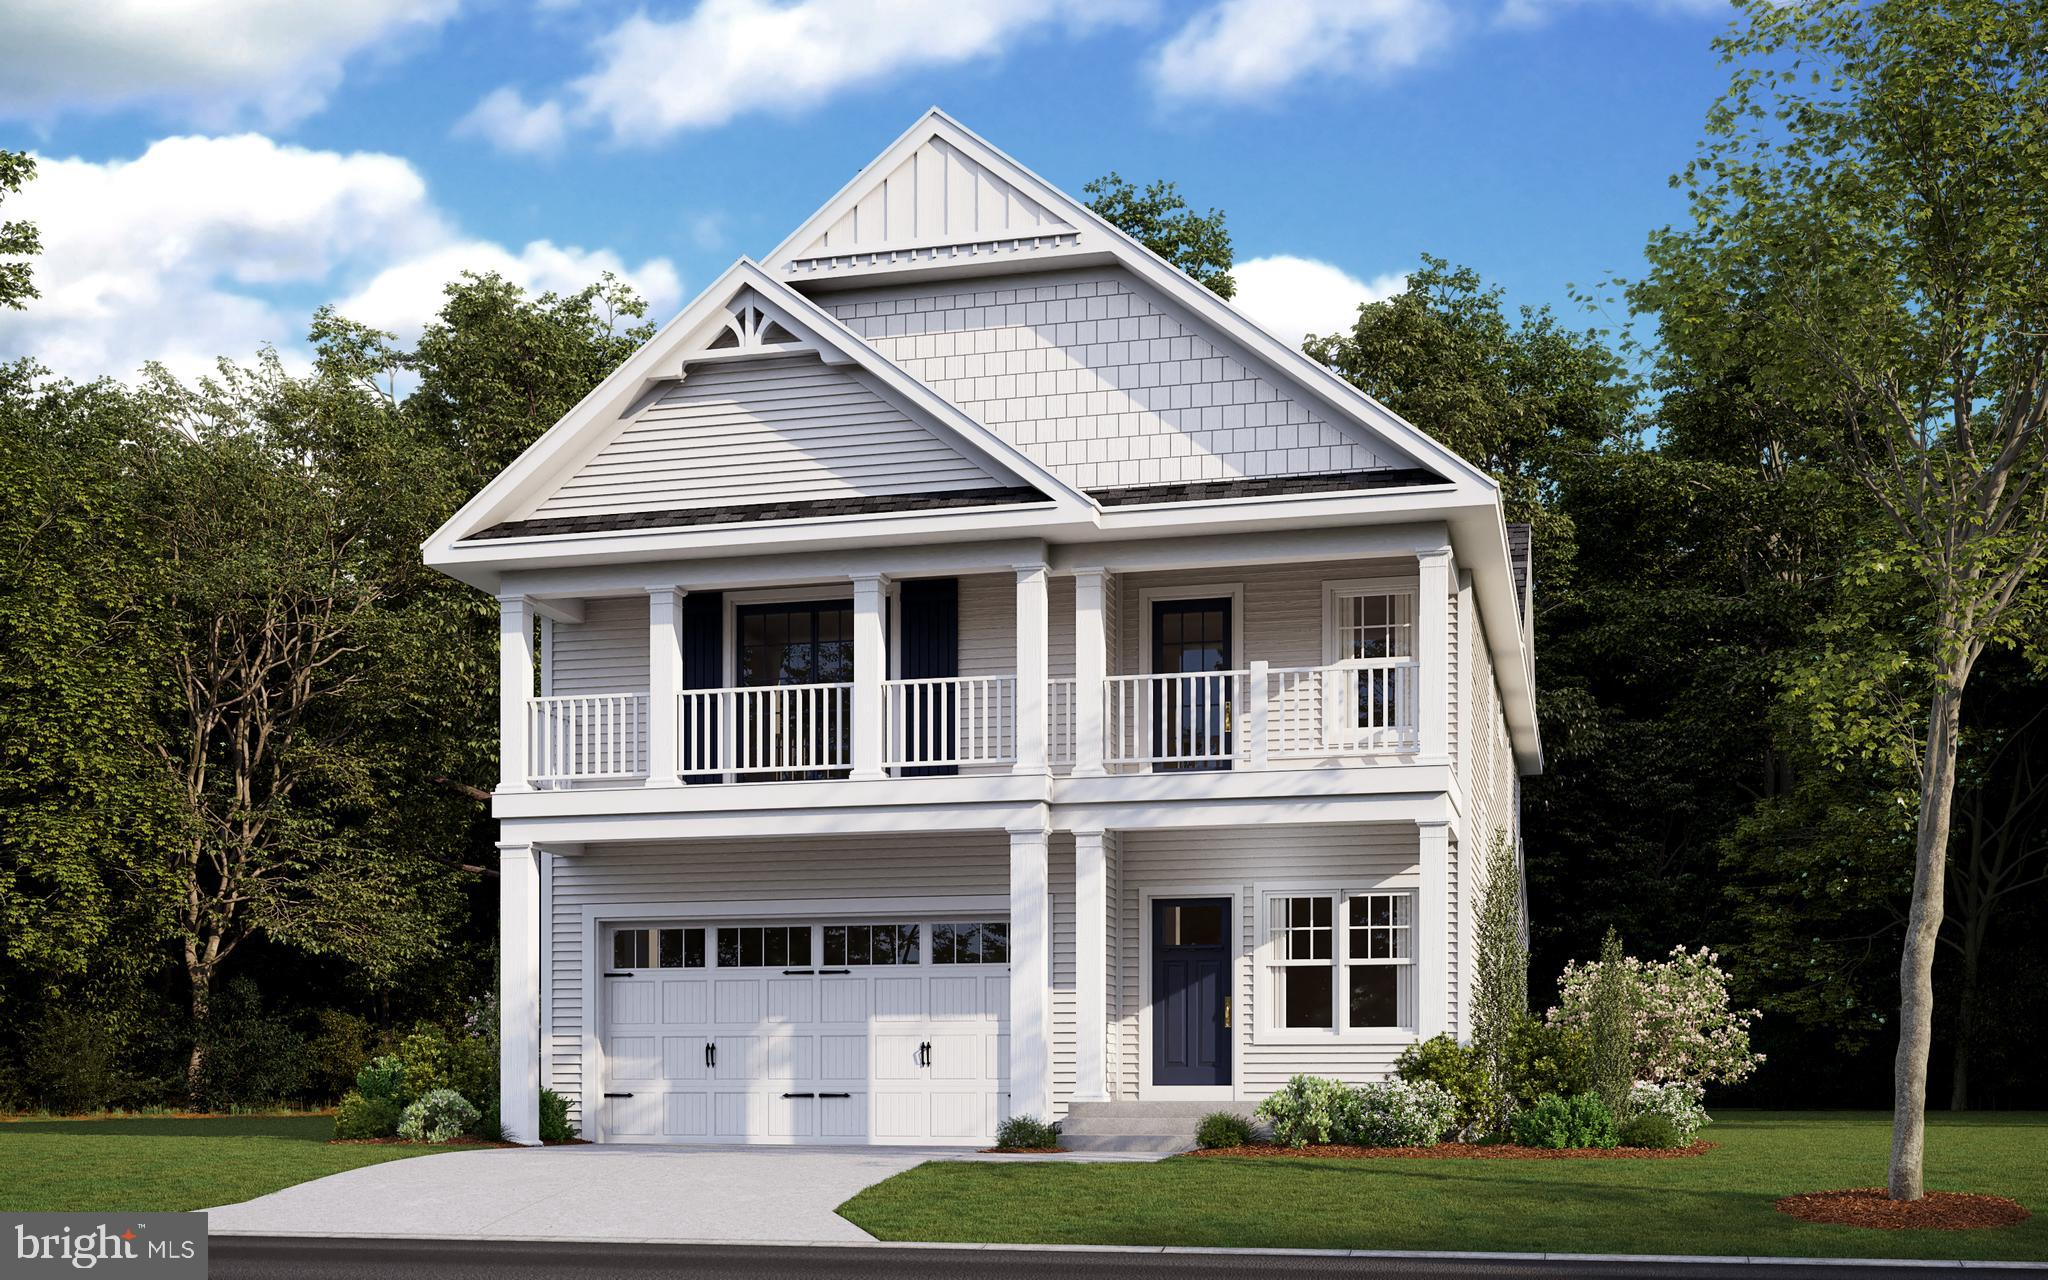 The Charleston, by Bryton Homes, flaunts its irresistible curb appeal, highlighting first and second